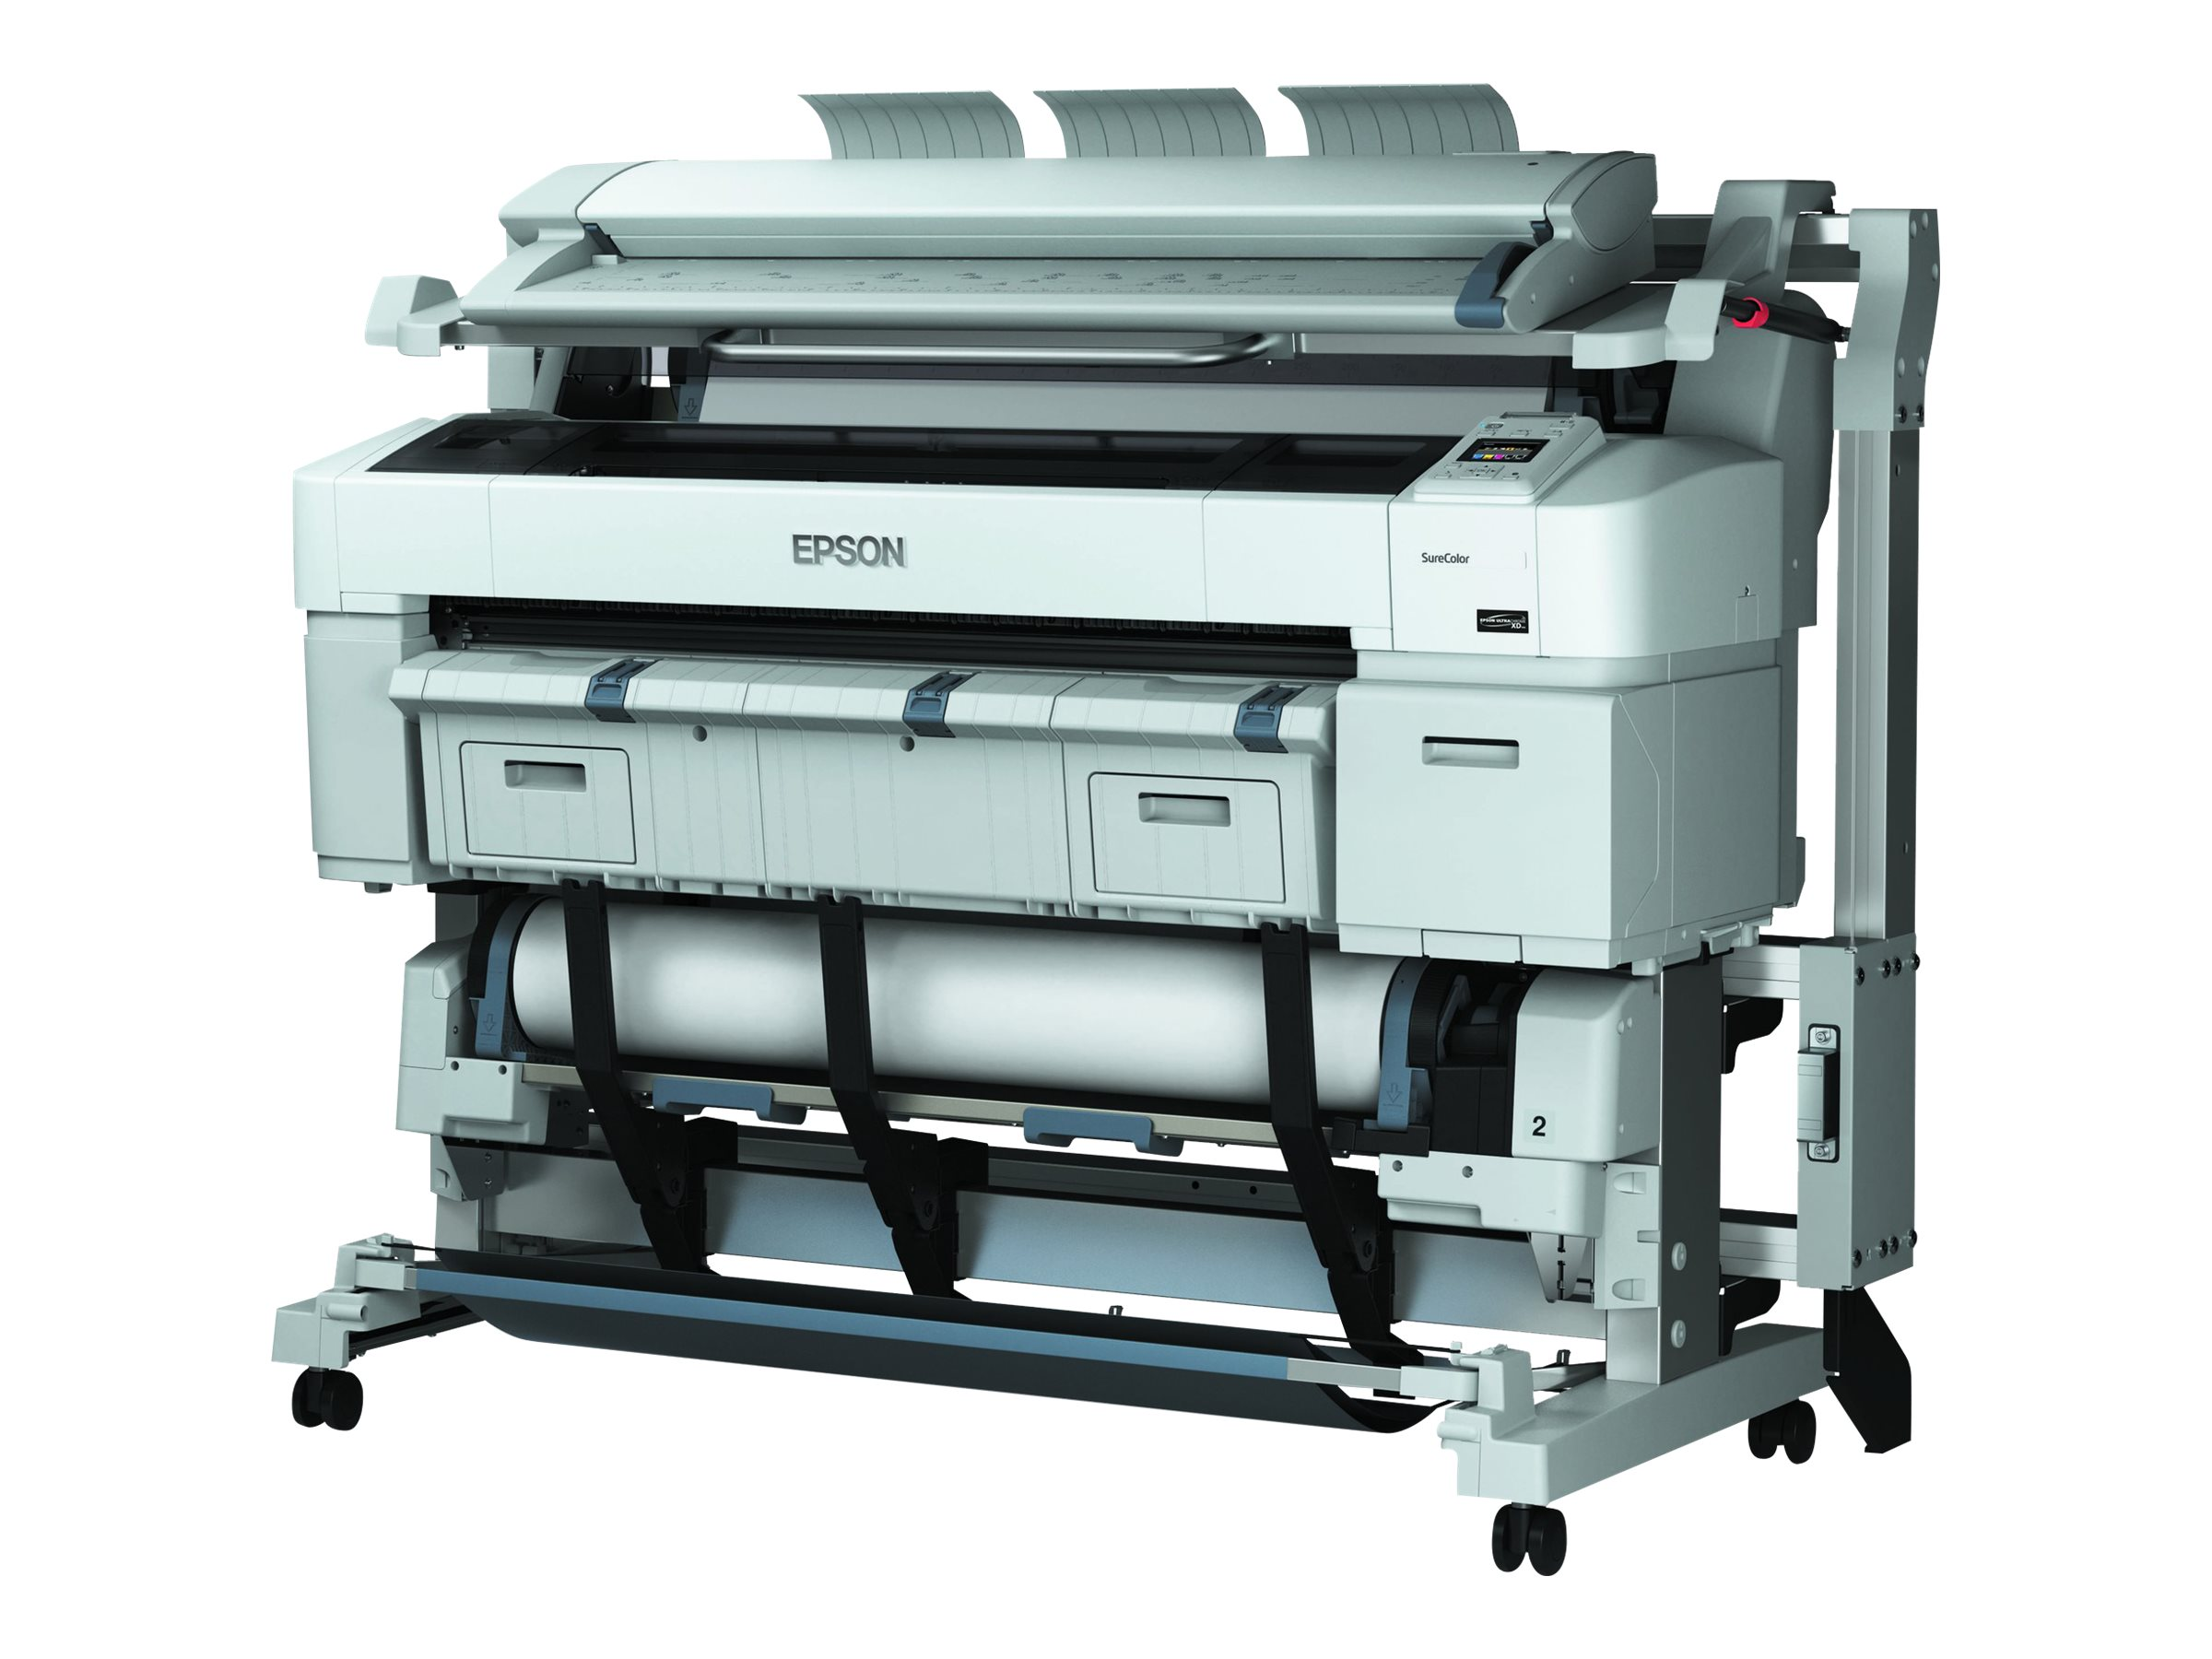 Epson SureColor T7270D Dual Roll Printer - $6995 less instant rebate of $1000.00, SCT7270DR, 18034760, Printers - Large Format